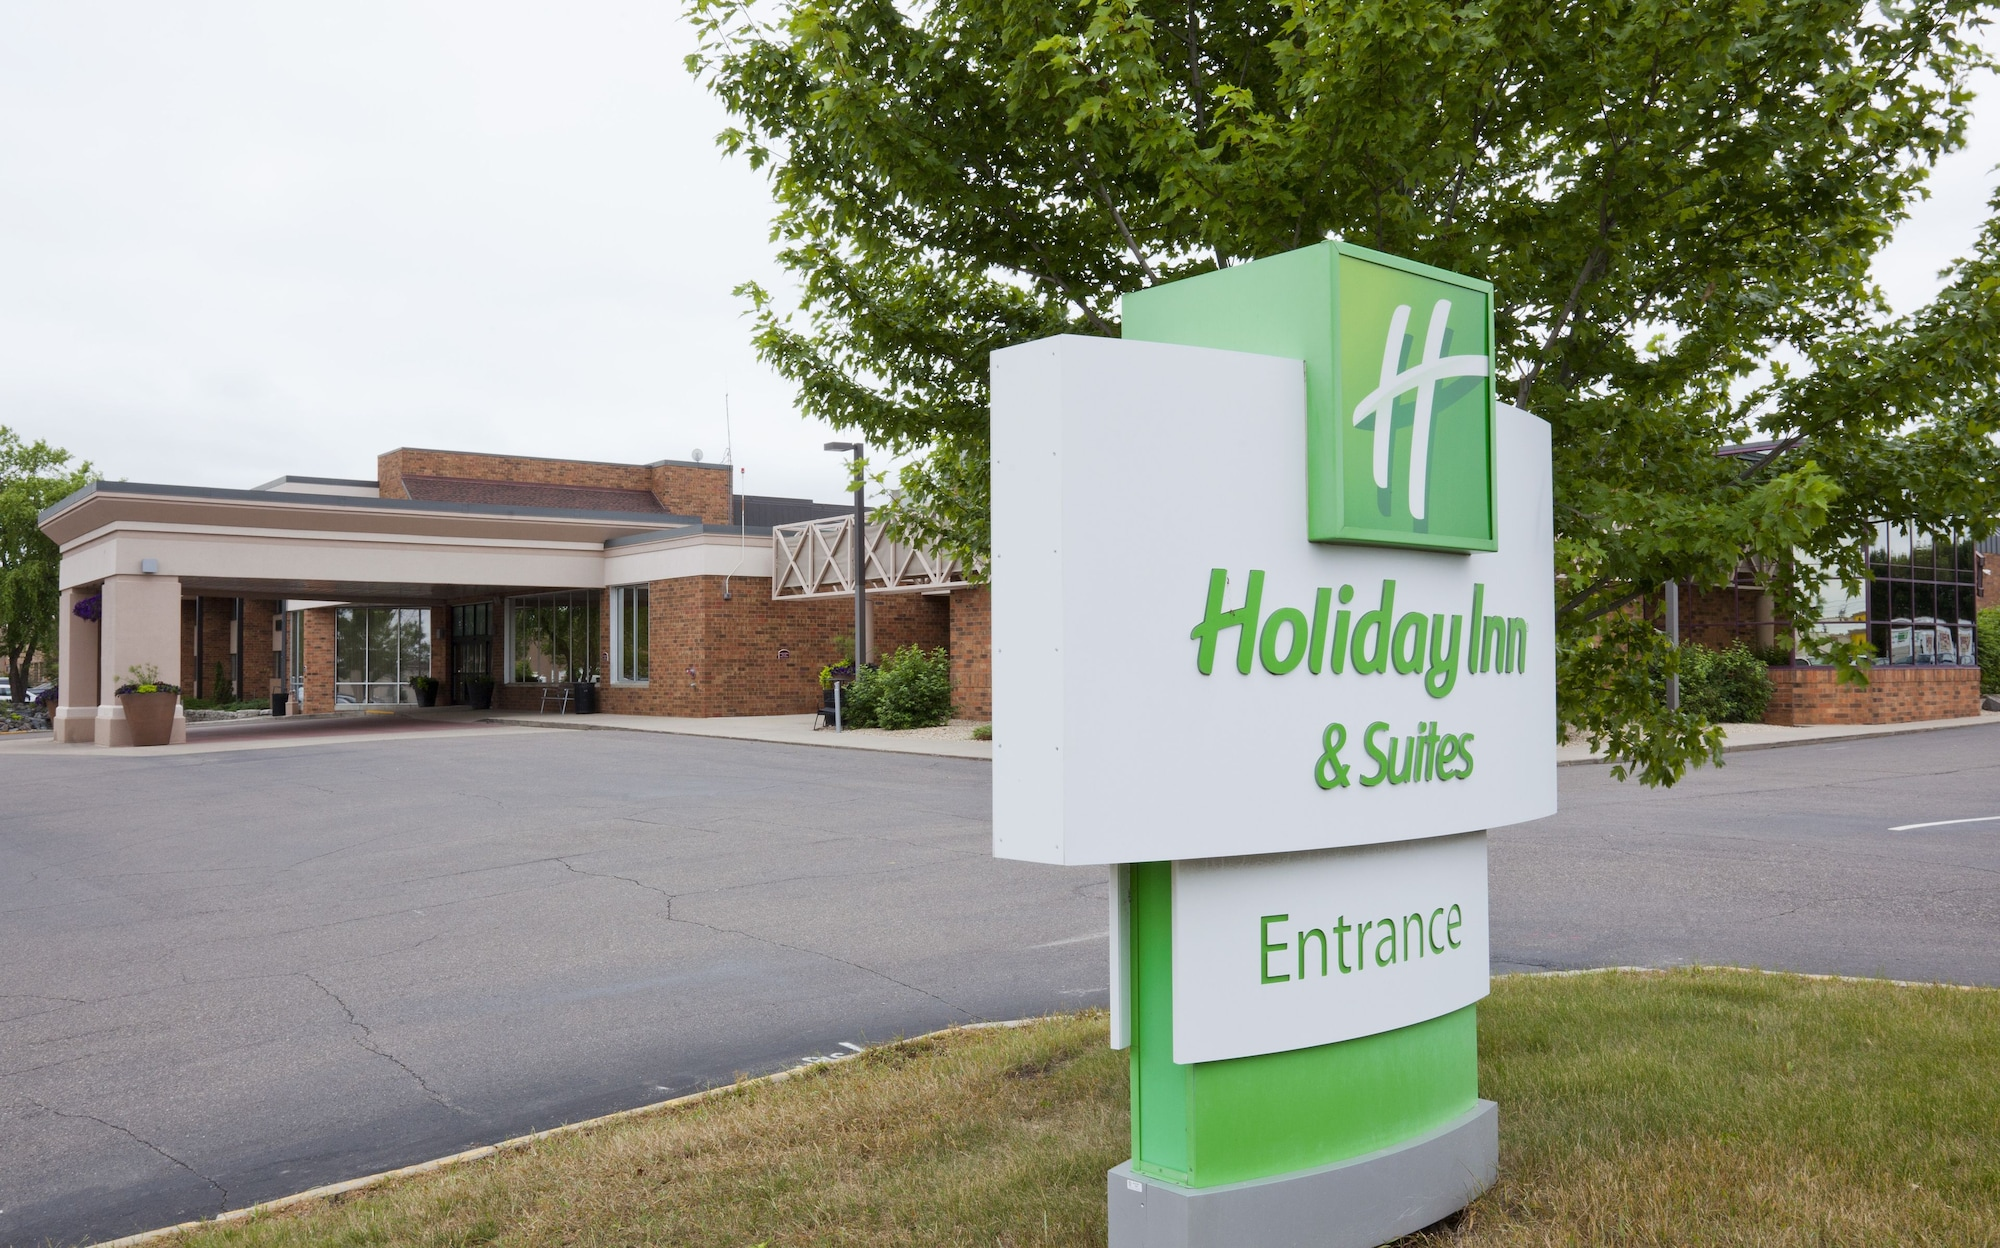 Holiday Inn Hotel & Suites - St. Cloud, Stearns